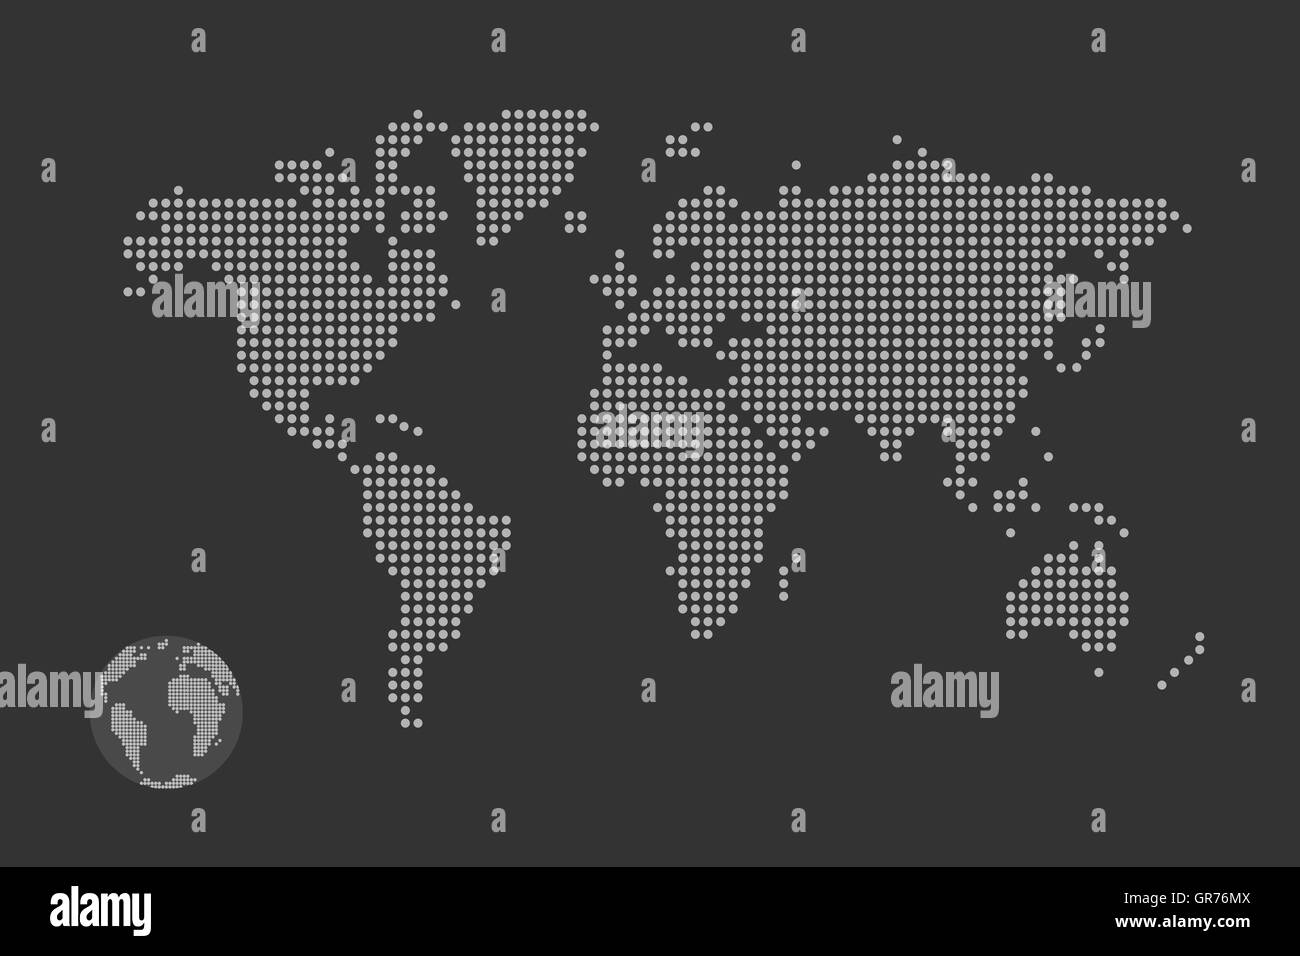 Simplified computer generated world map in black and white dots simplified computer generated world map in black and white dots vector eps 10 gumiabroncs Image collections